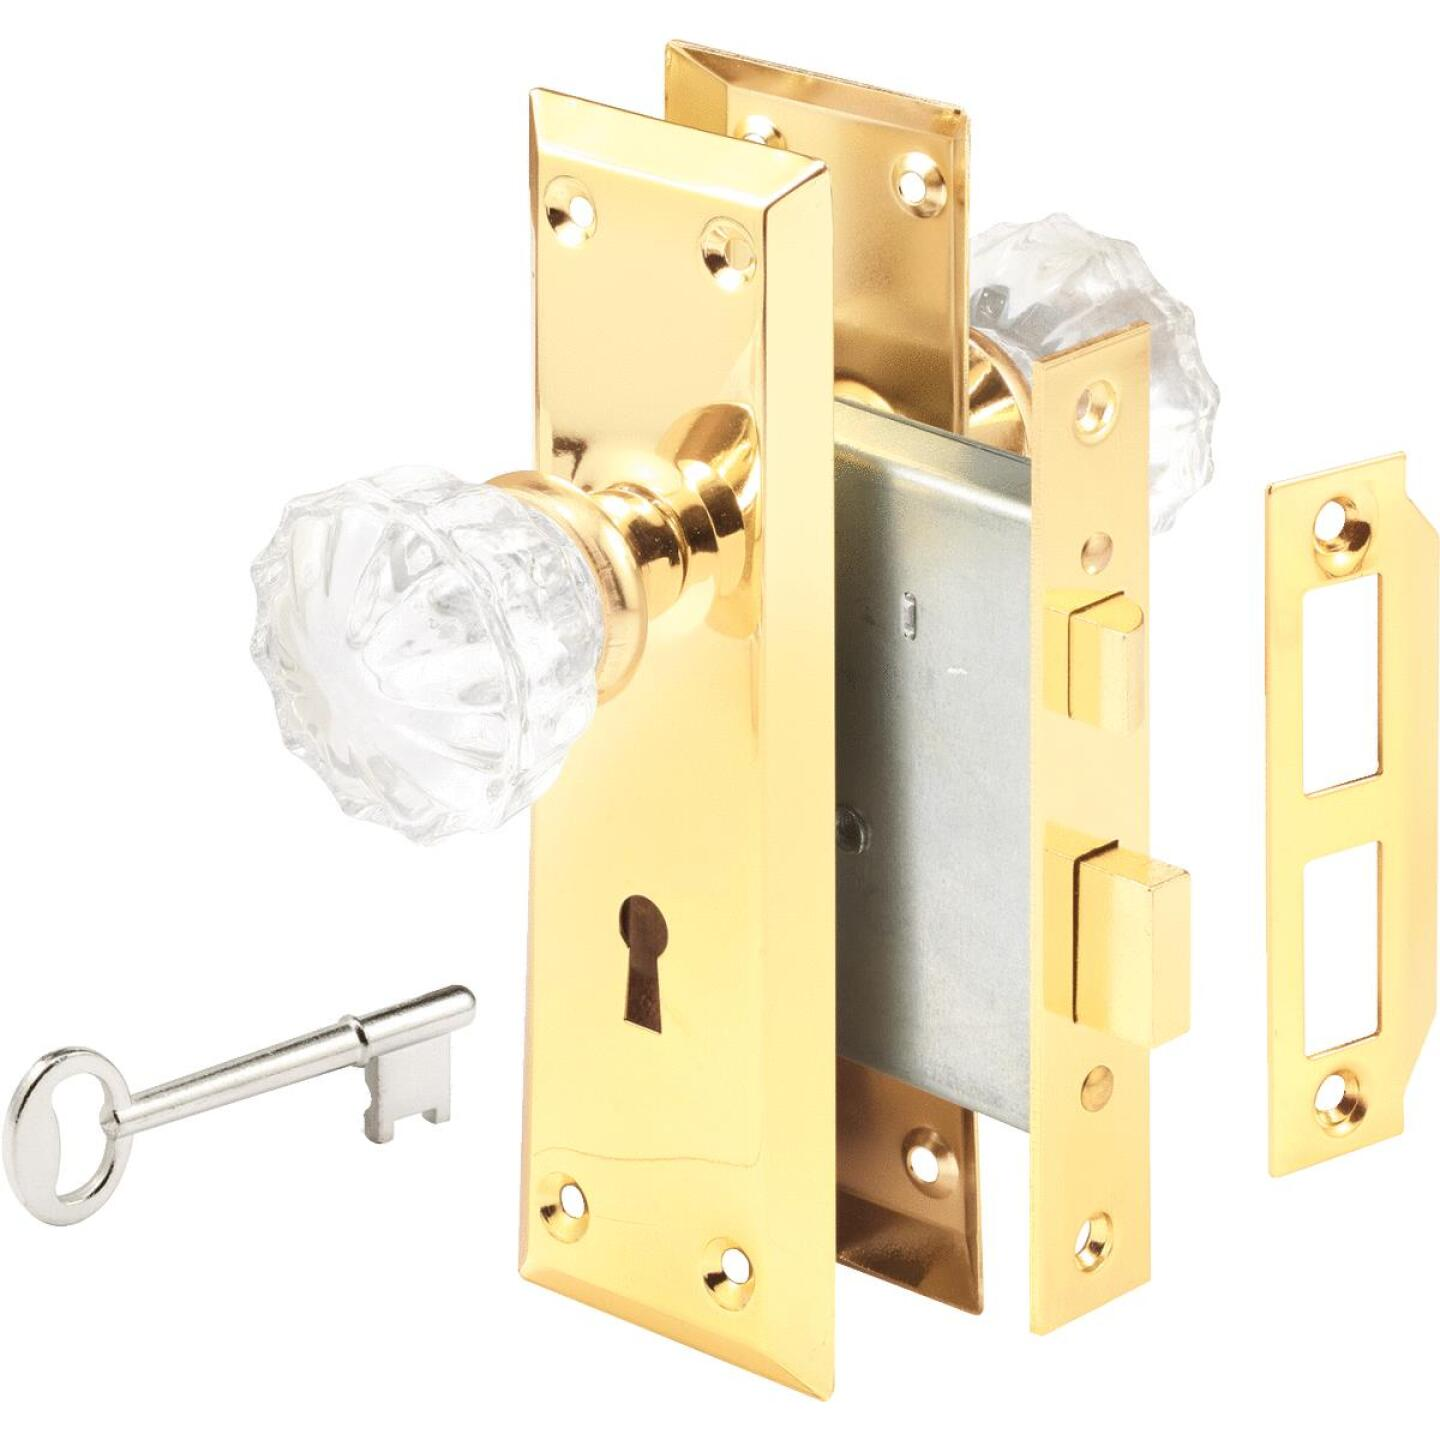 Defender Security Brass Keyed Mortise Entry Lock Set With Glass Knob Image 1